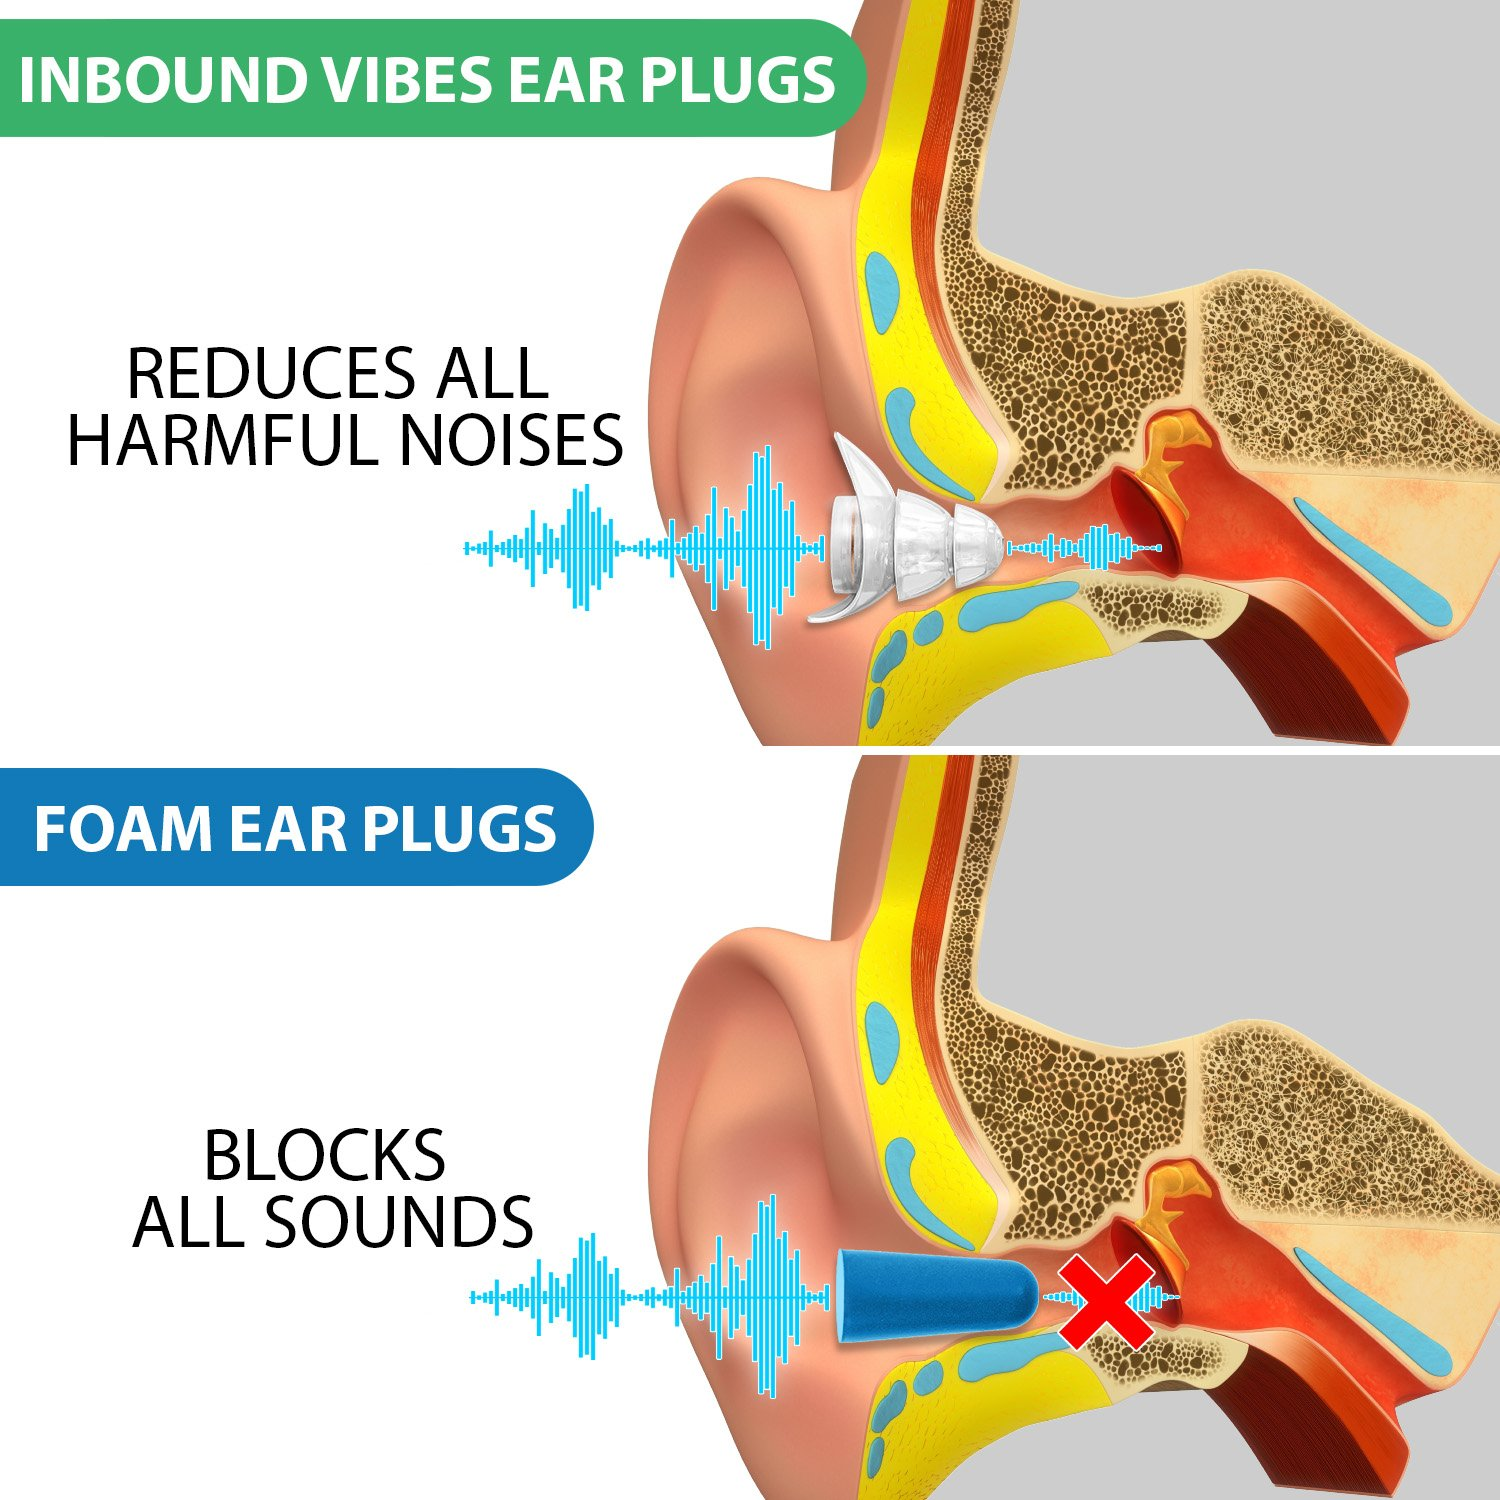 Sound Reducing Professional Ear Plugs - Most Effective Noise Reduction Ear Plugs for Concerts, Work, Sleep and Motorcycle Ear Protection - Soft and Comfortable Reusable Ear Plugs - Earplugs Sleep by Inbound Vibes (Image #9)